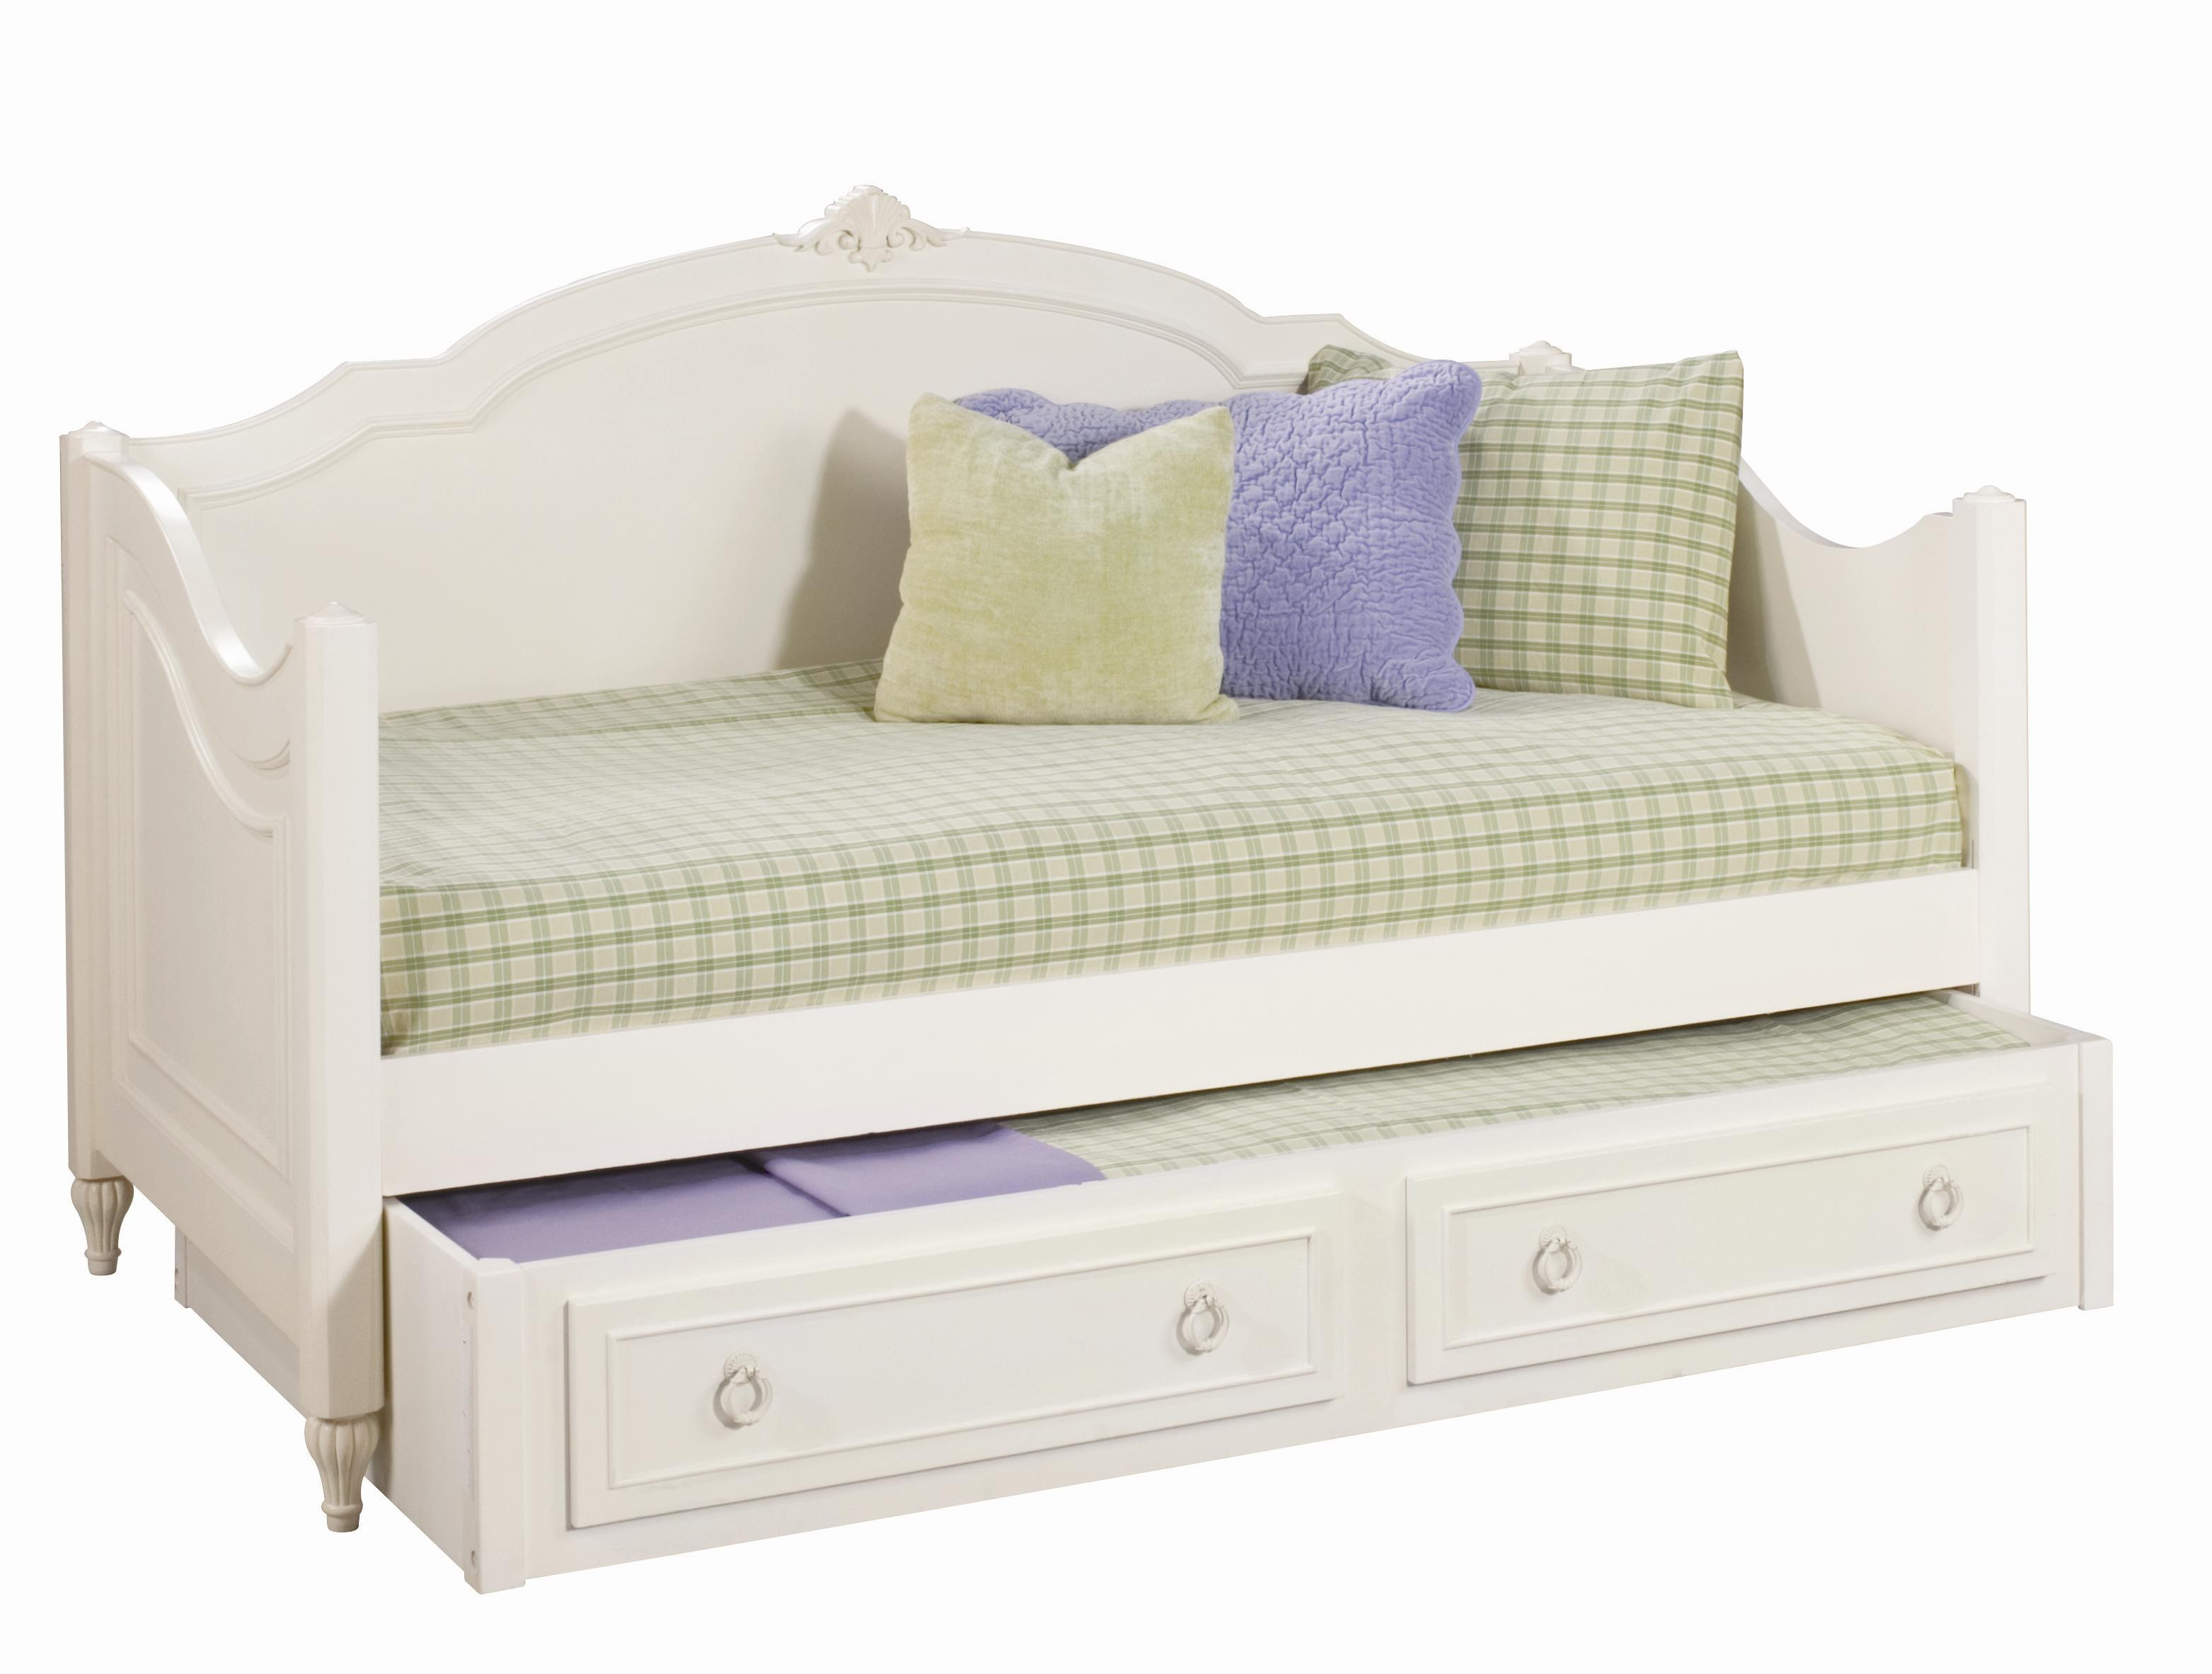 Lovely solid Wood Ikea Bed Frame | Insured By Ross